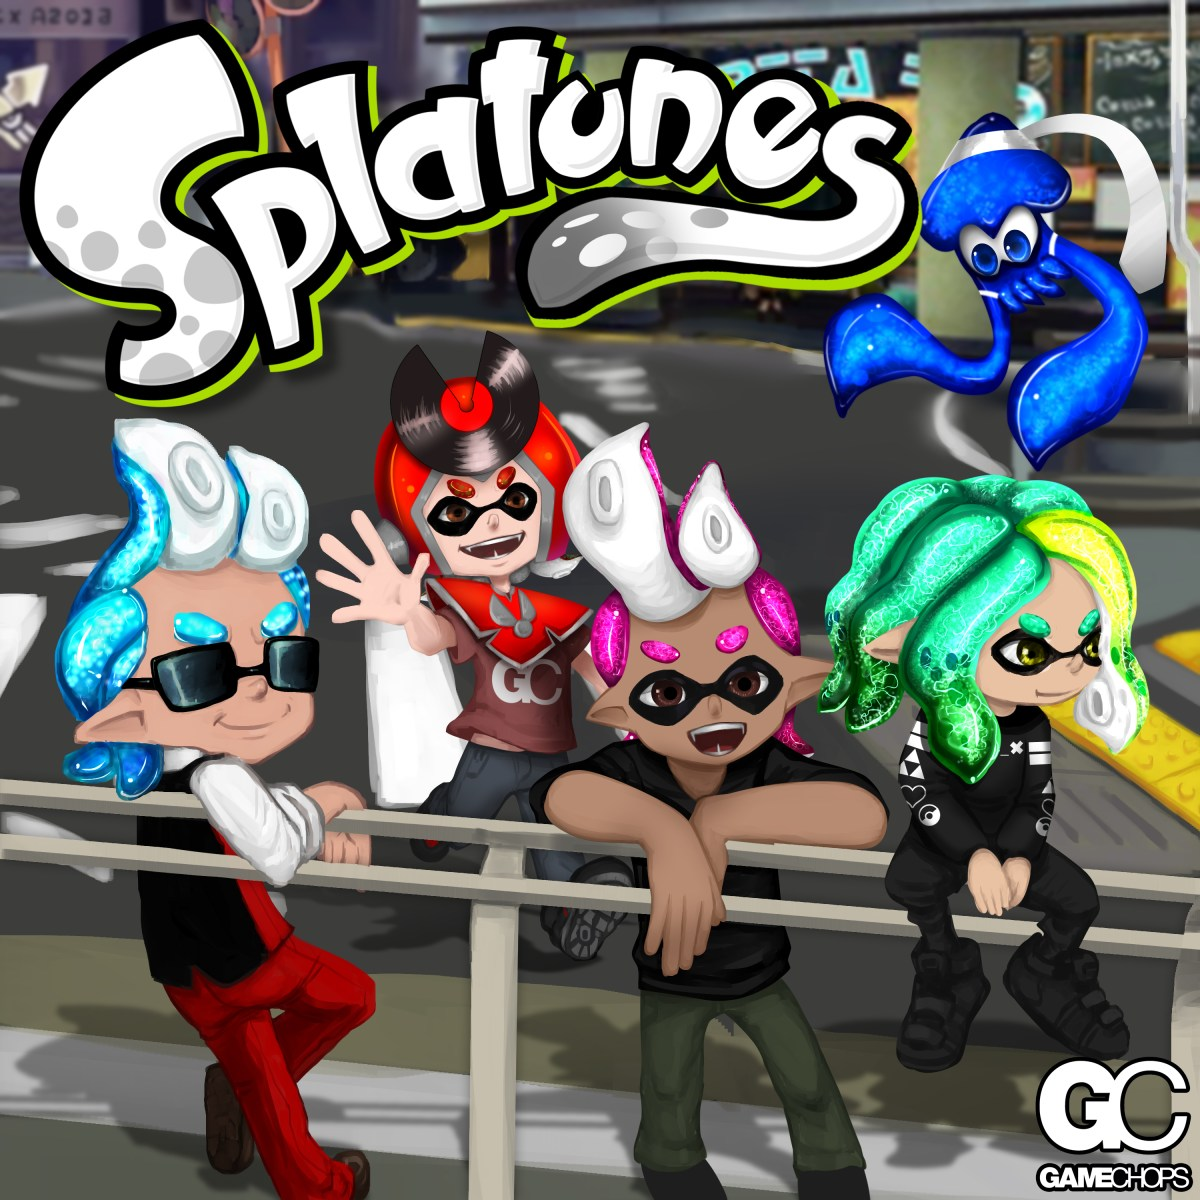 Splatunes: A Splatoon Remix Album from GameChops